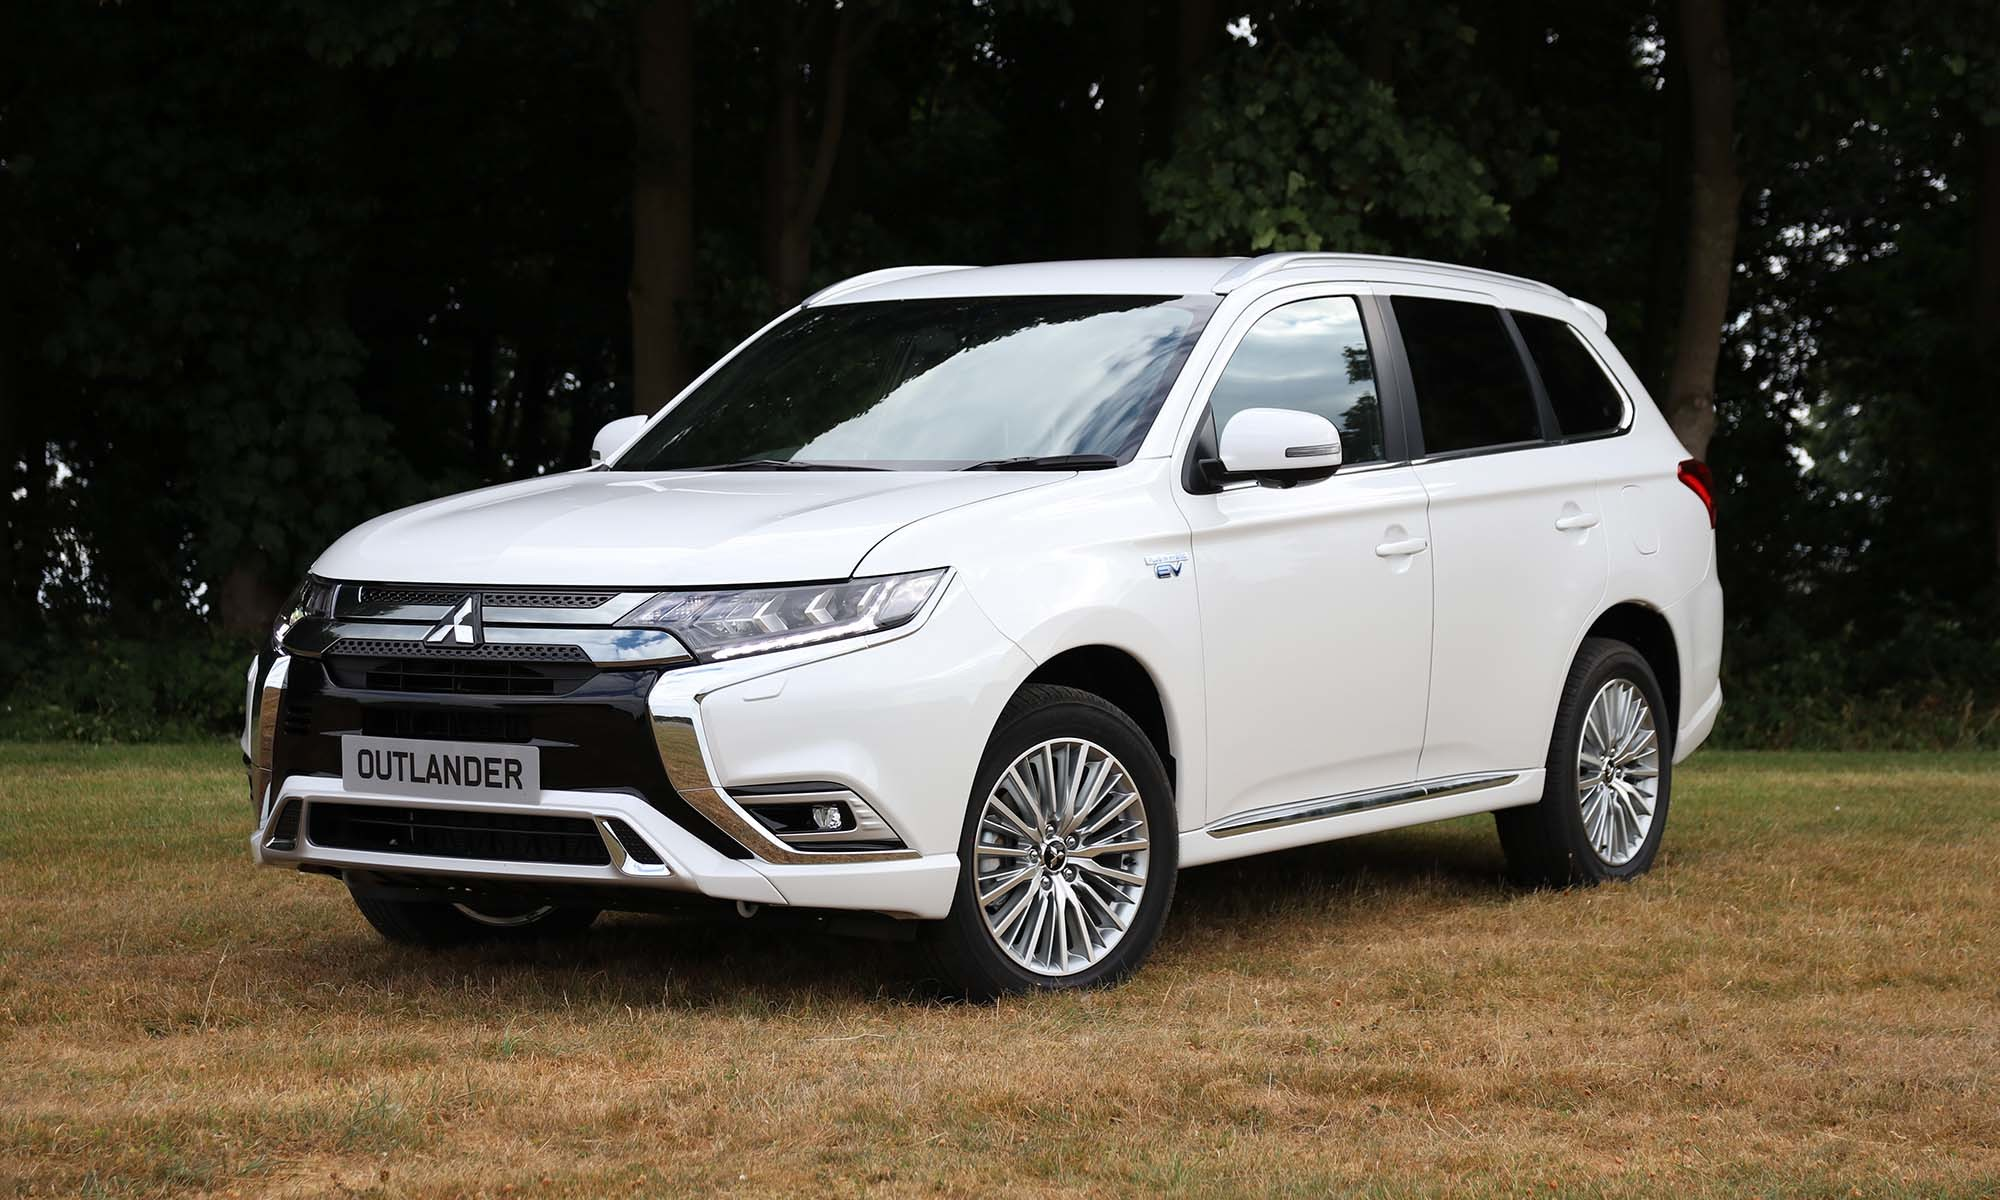 Mitsubishi Outlander Plug-In Hybrid (2018) Charging Guide